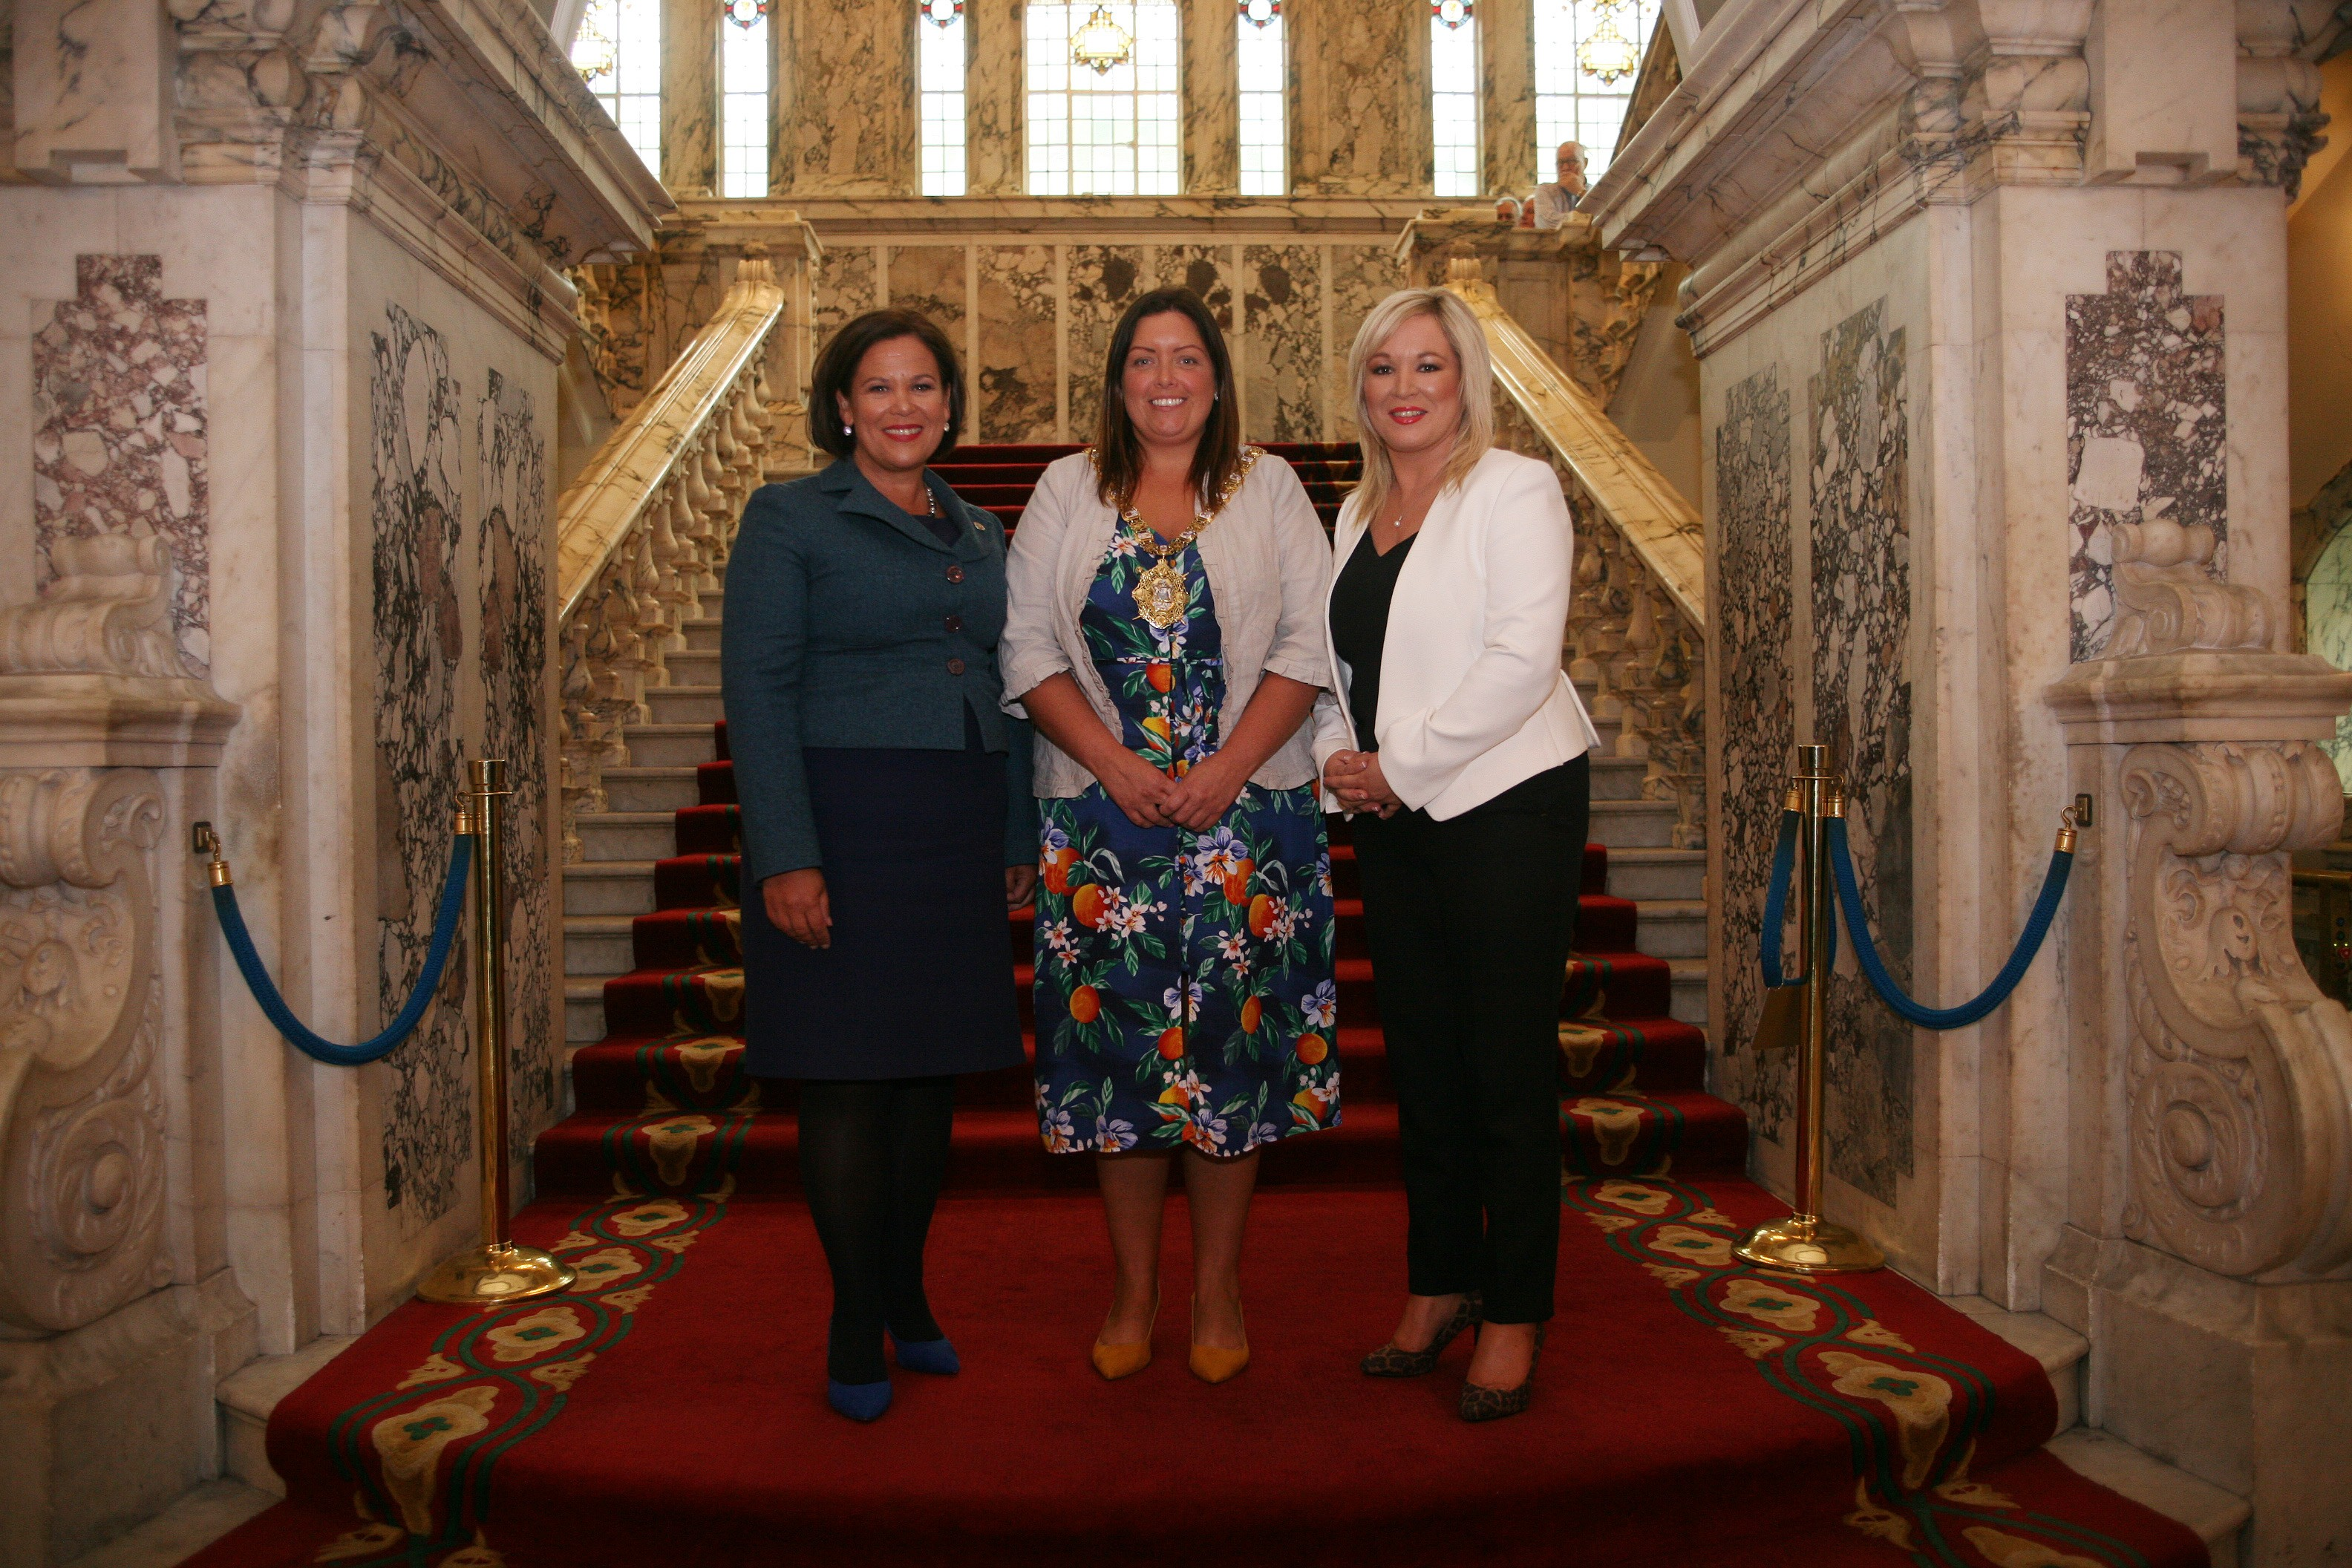 Belfast Ard Mheara welcoming Mary Lou McDonald and Michelle O'Neill to Belfast City Hall.